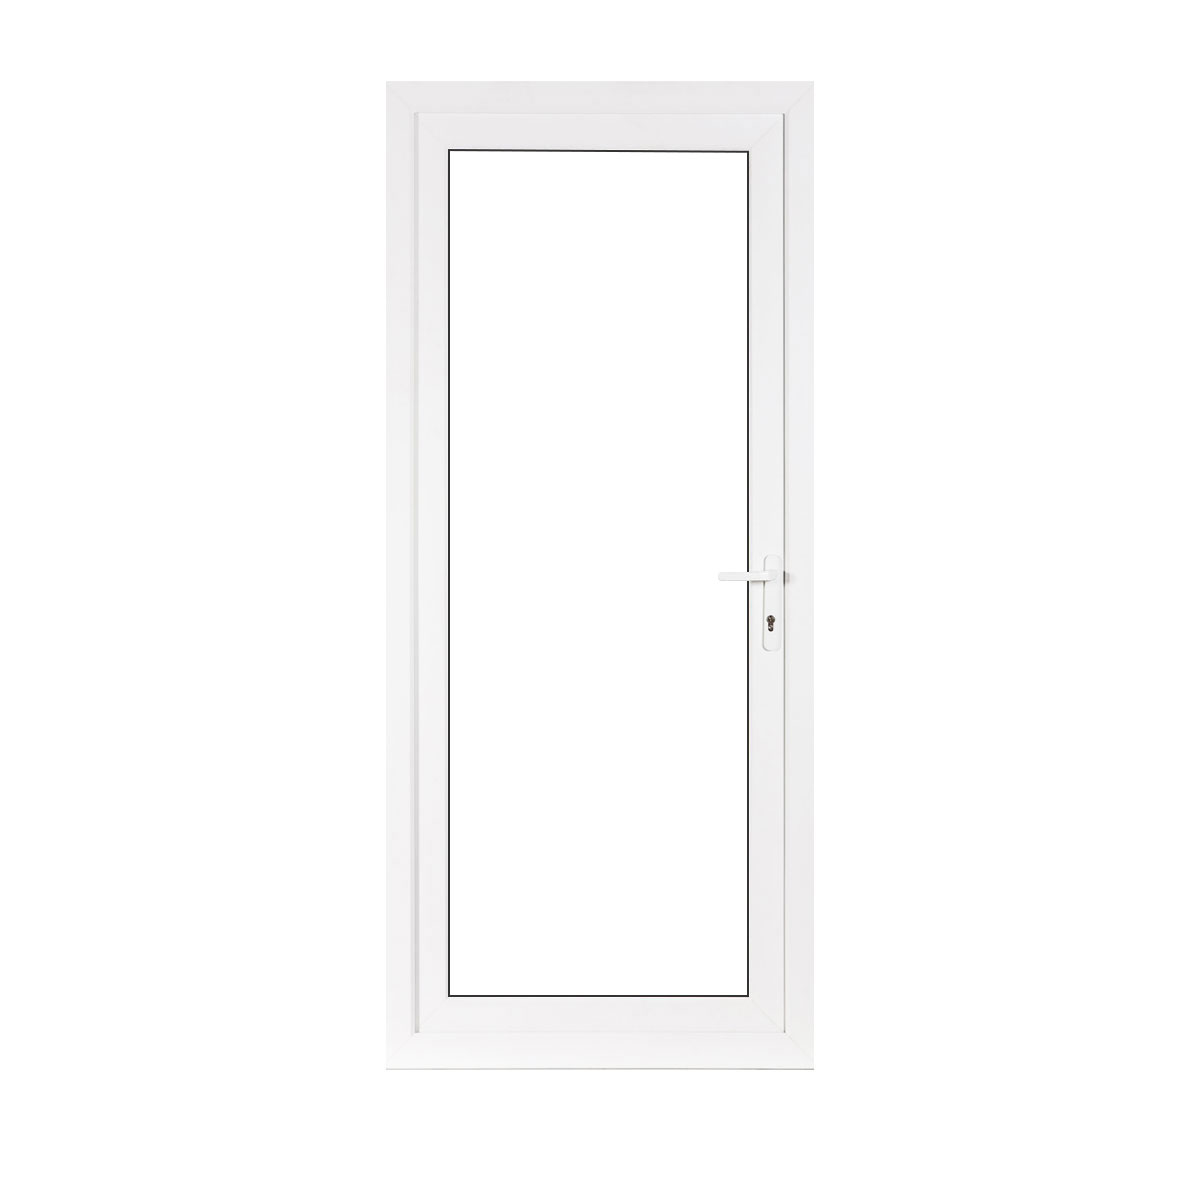 Full glass upvc back door flying doors for Upvc glass front doors